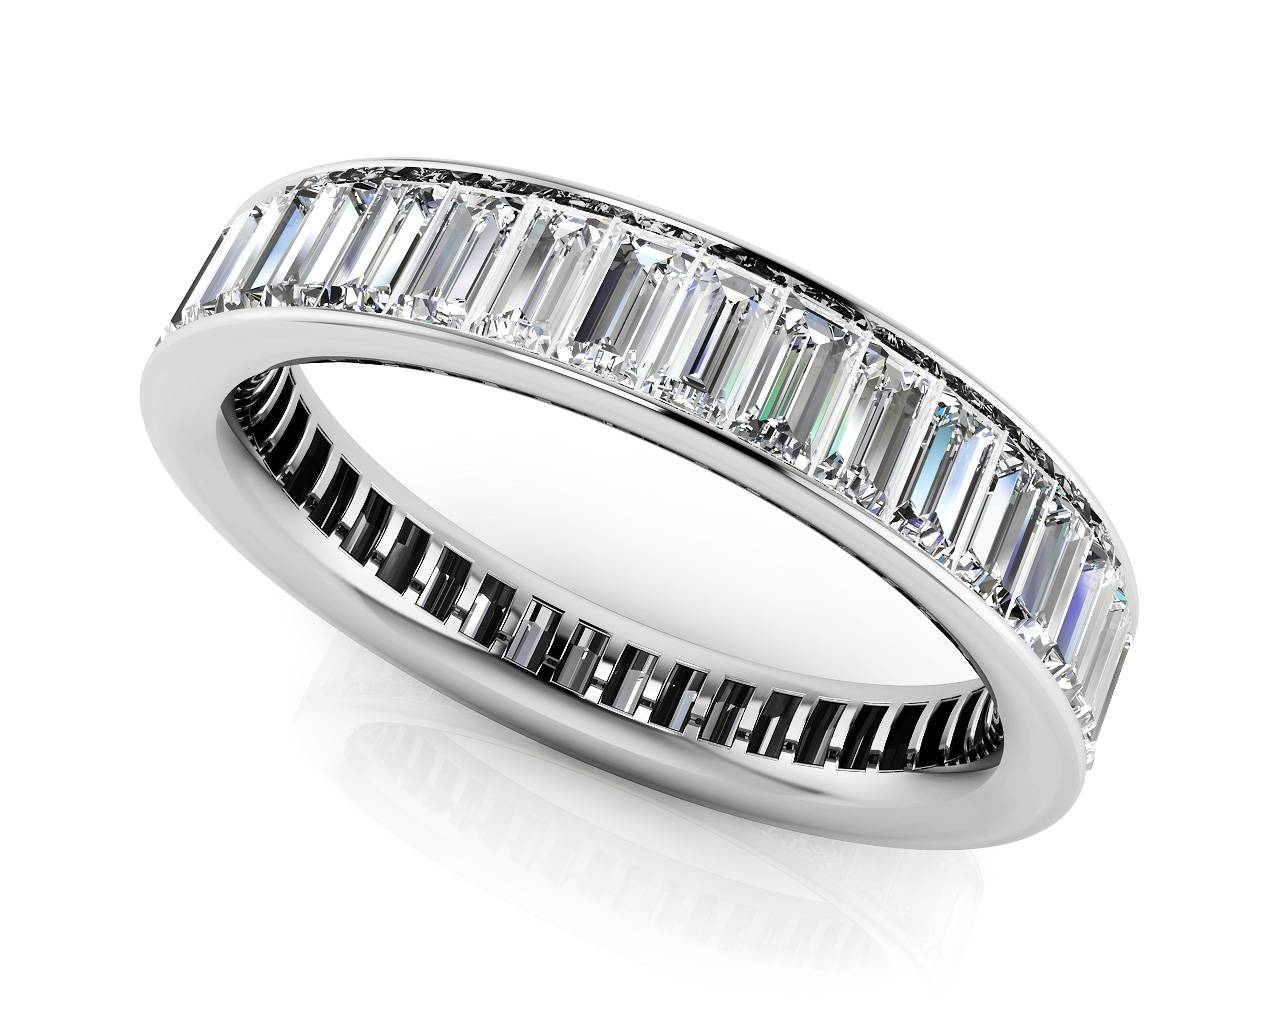 Large Collection Of Quality Diamond Eternity Rings & Bands Inside Newest Baguette Anniversary Rings (Gallery 4 of 25)